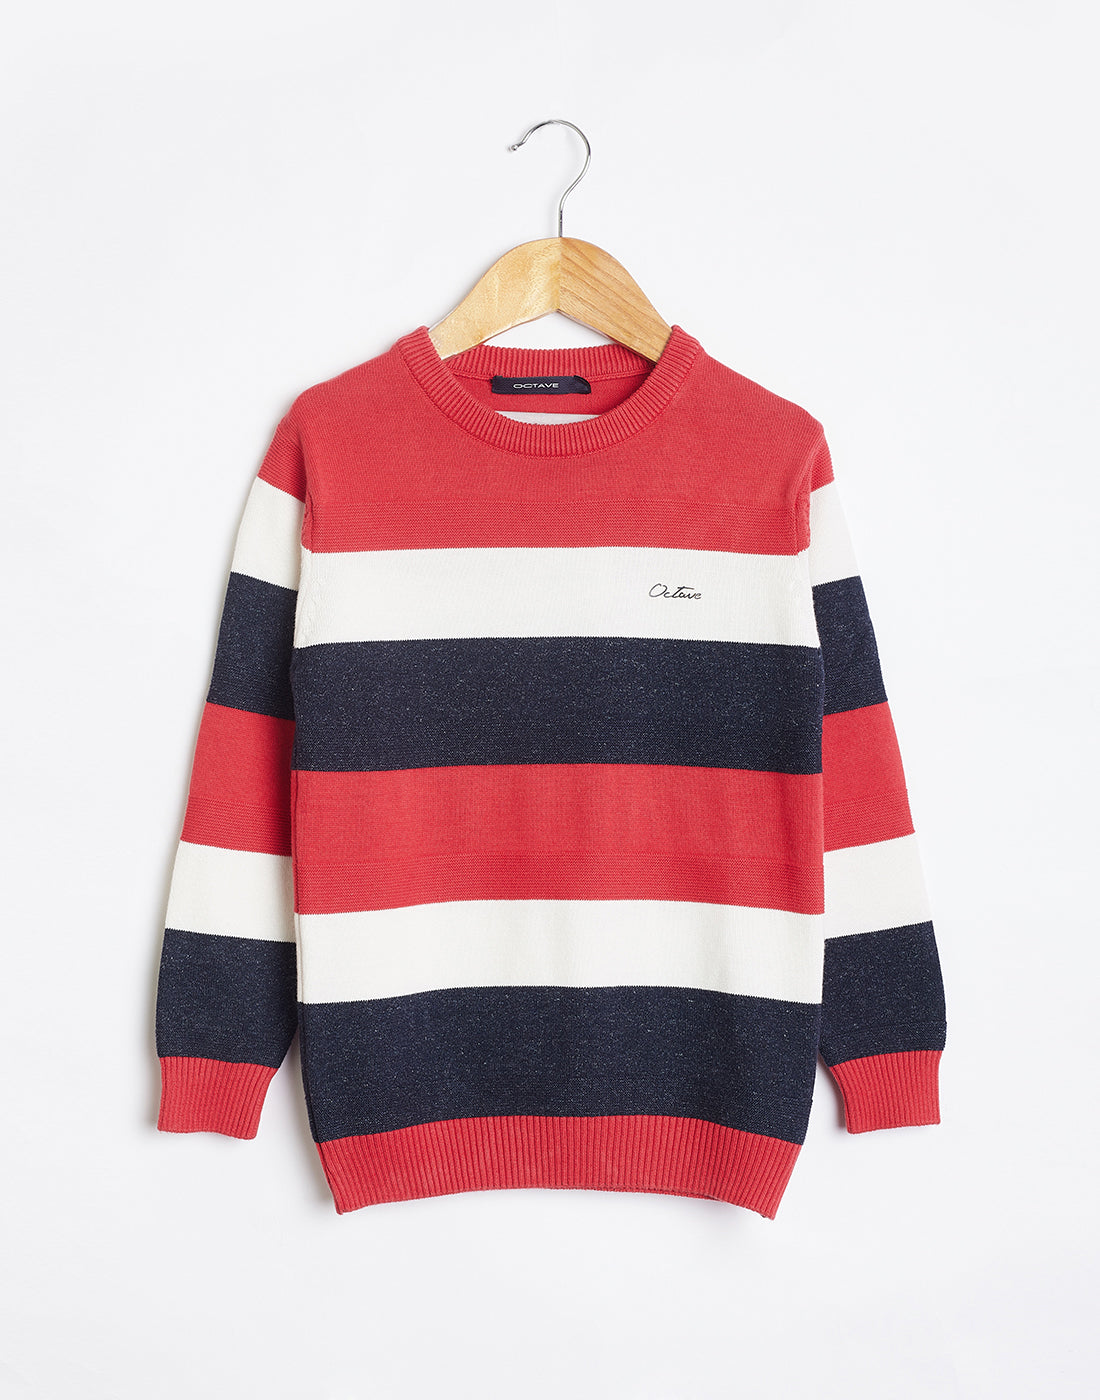 Octave Boys Miami Red Striped Sweater